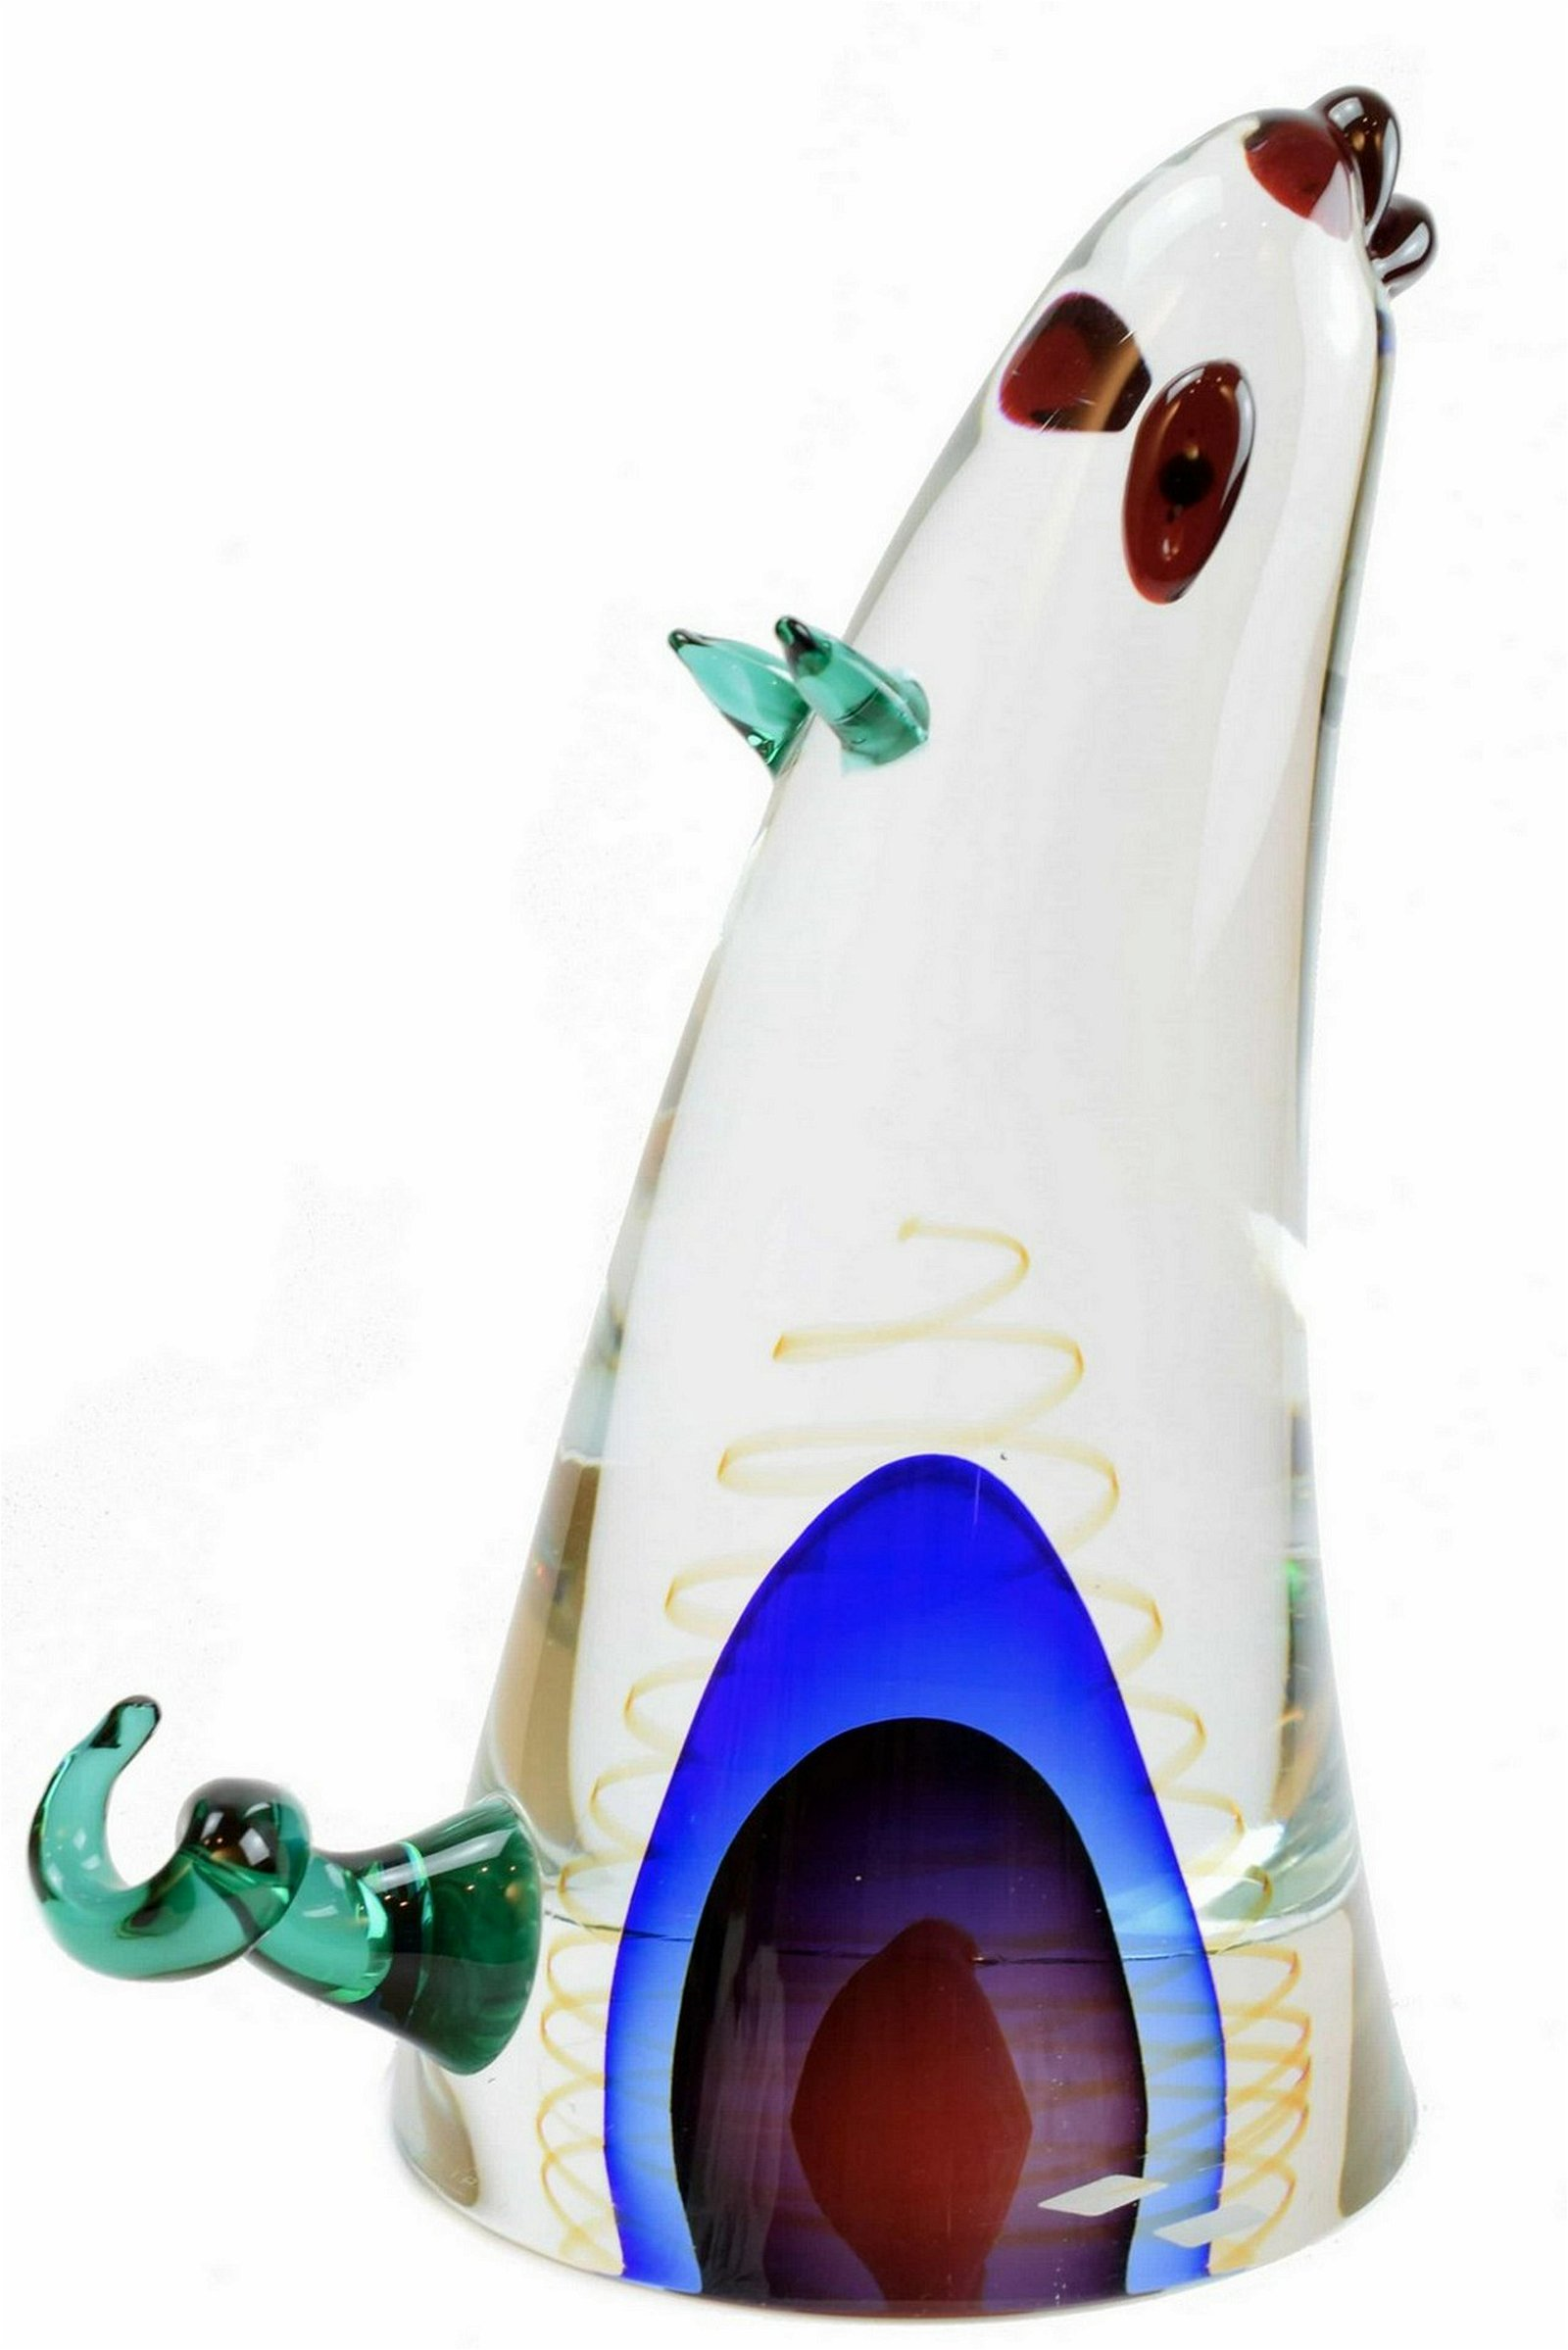 Giuliano Tosi - Sommerso scuplture signed